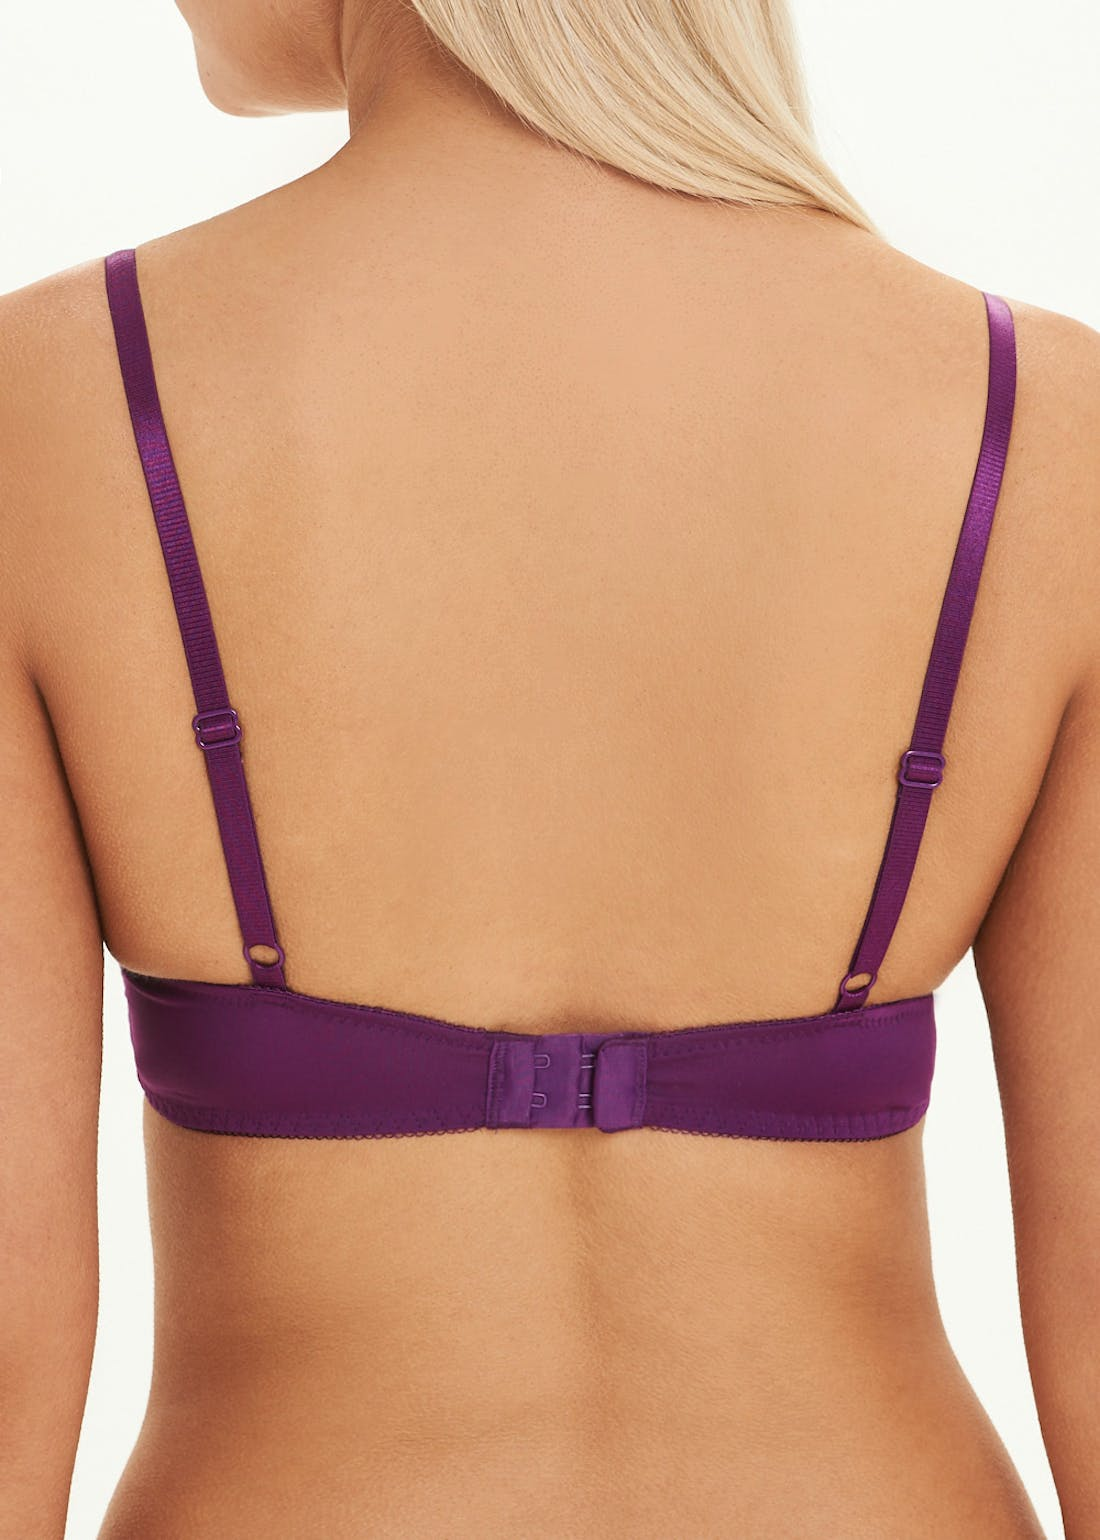 2 Pack Embroidered Bras